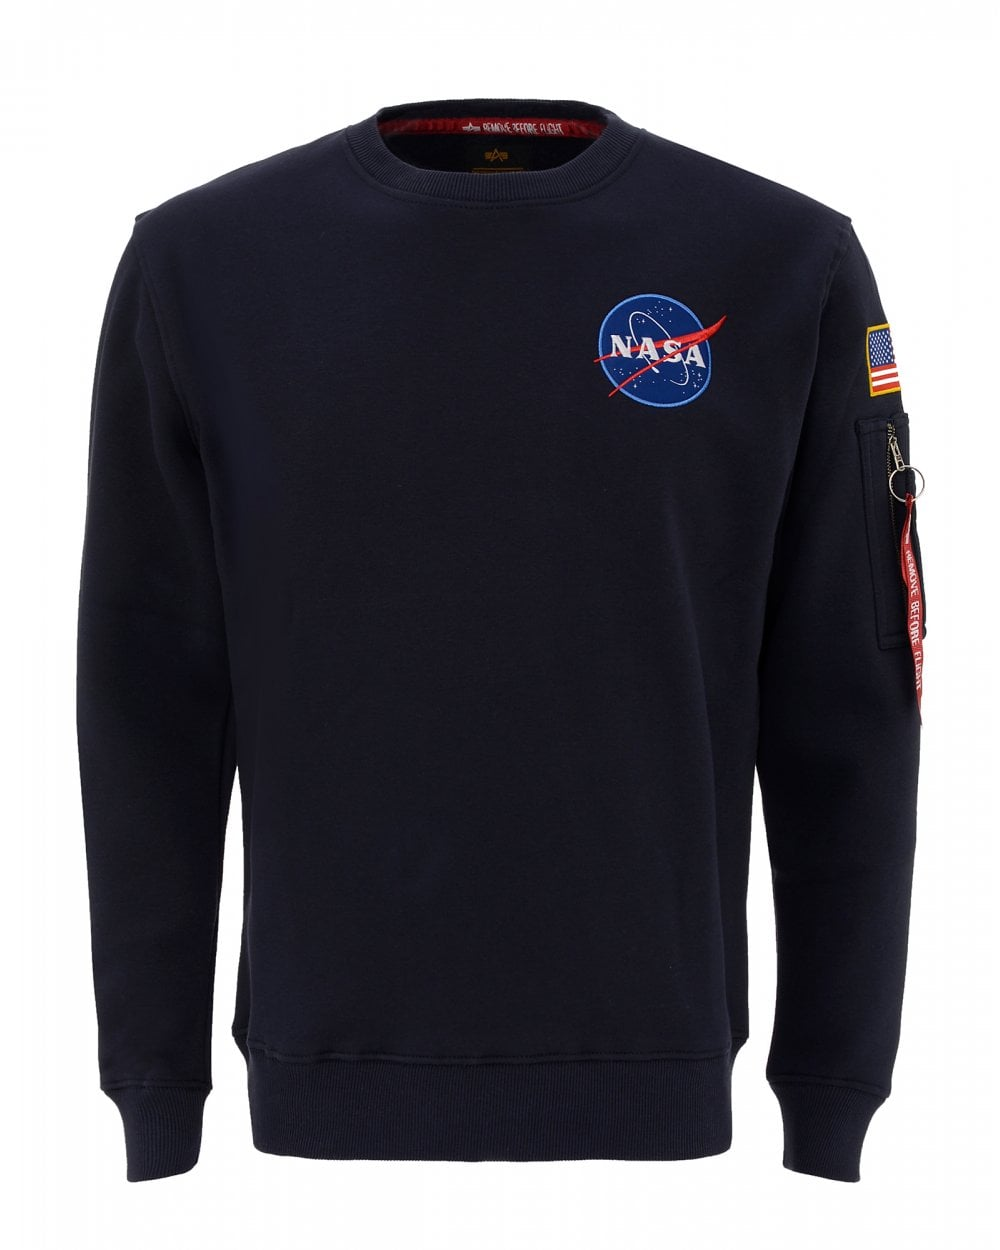 2e3a96be42 Alpha Industries Mens NASA Space Shuttle Sweatshirt, Blue Sweatshirt